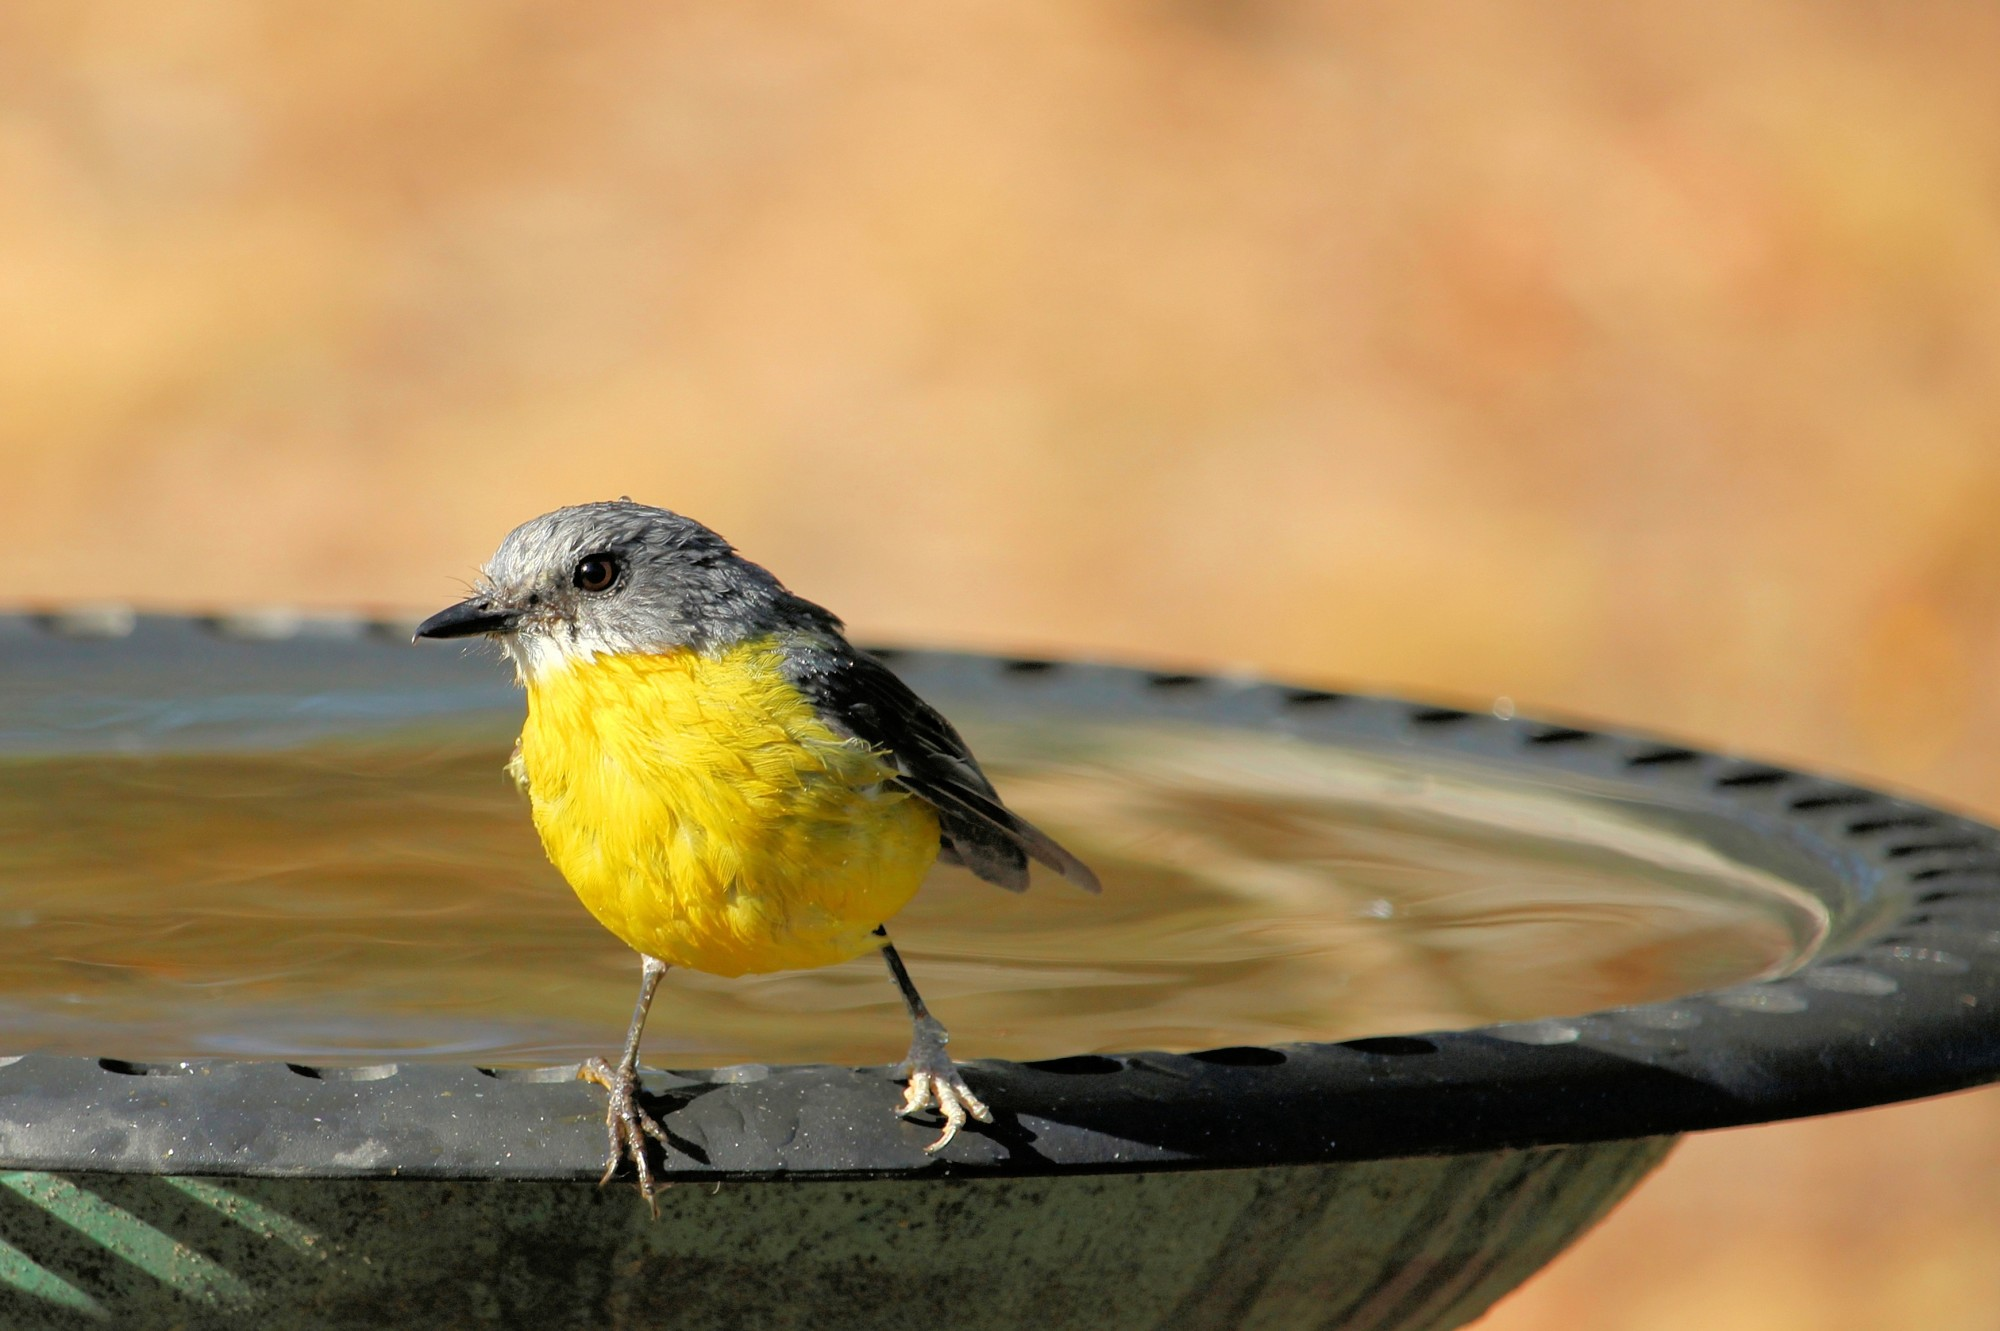 Making your yard welcoming is the key to attracting birds. Read on to discover the complete guide to attracting birds to your yard here.